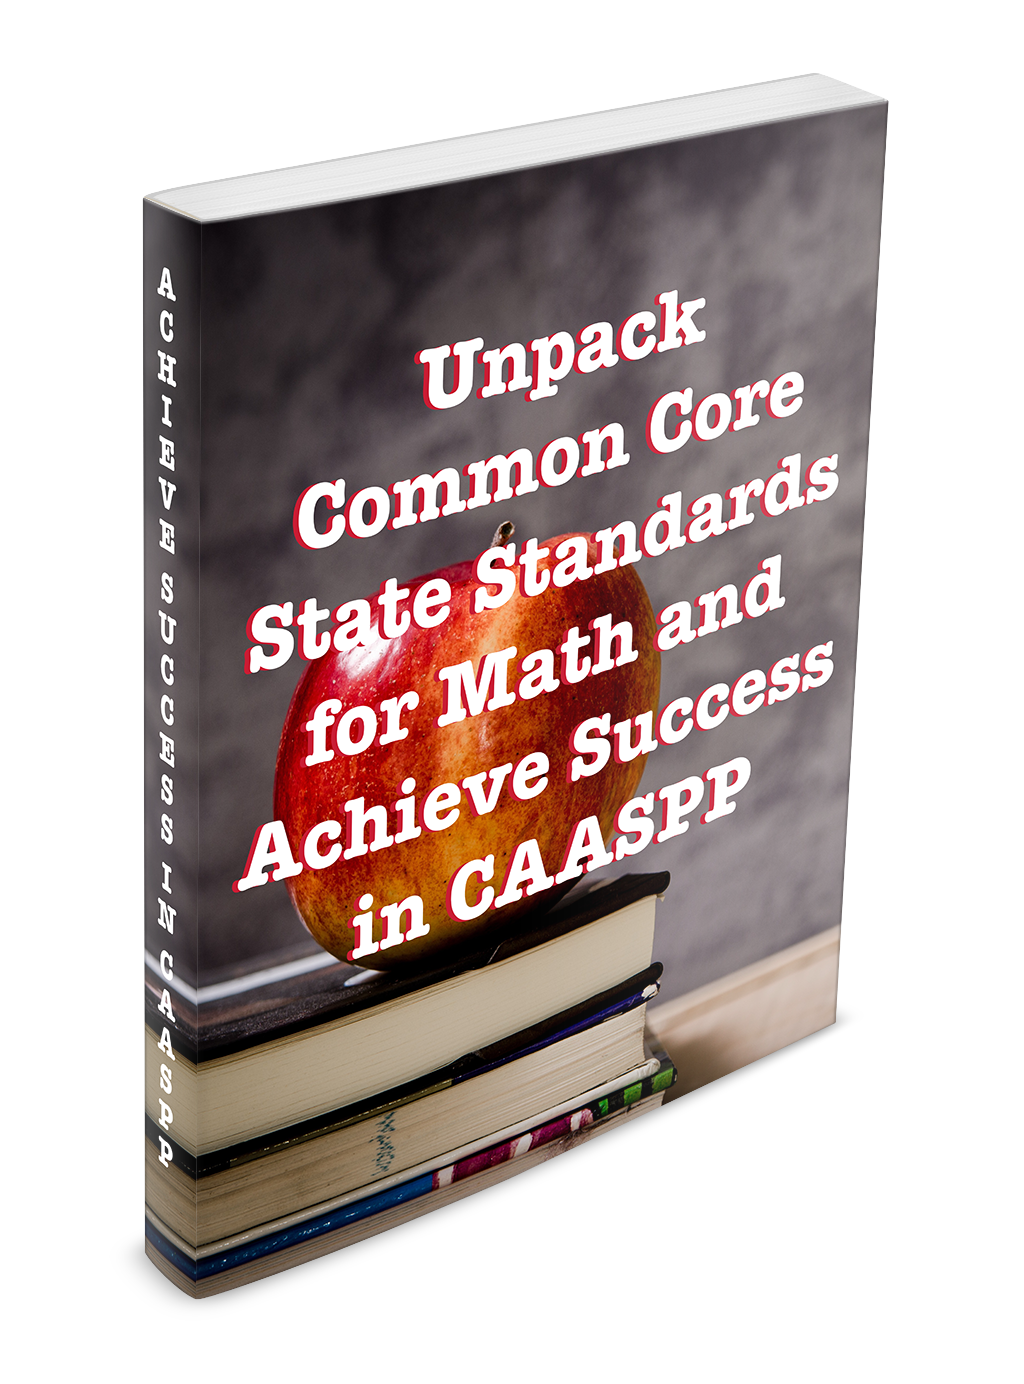 Unpack Common Core State Standards for Math and Achieve Success in CAASPP